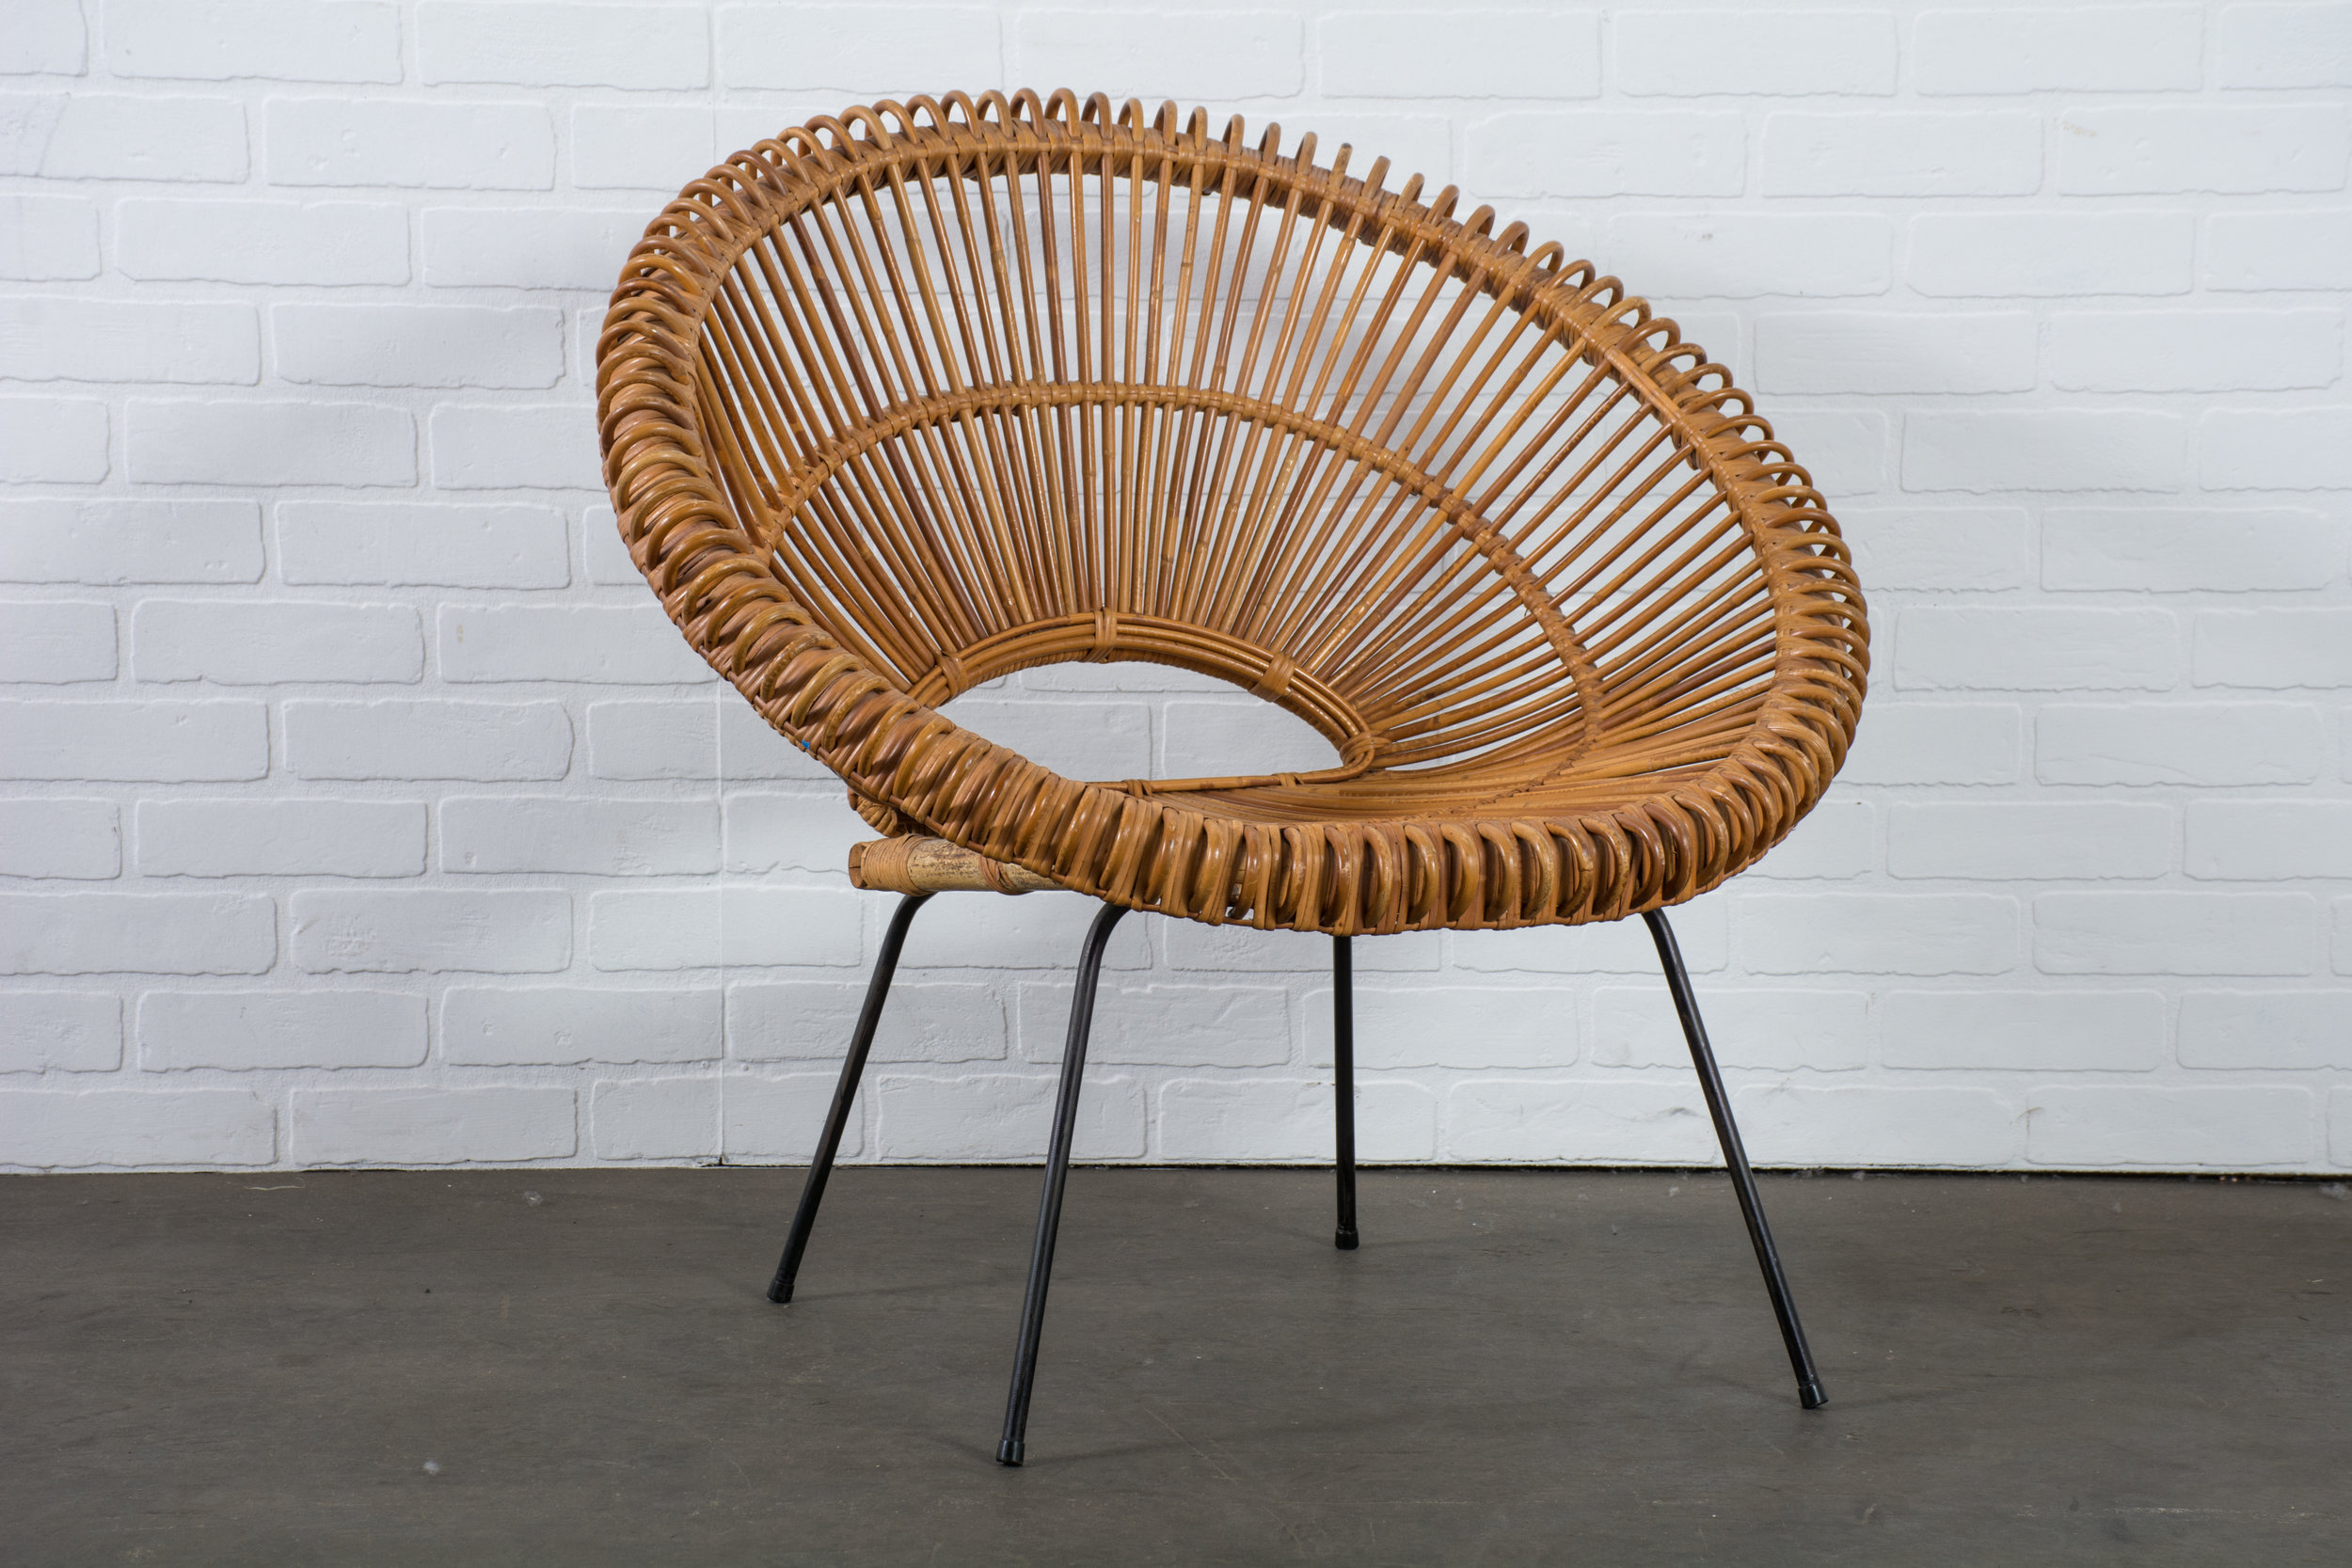 Vintage Mid-Century Rattan Chair in Manner of Janine Abraham and Dirk Jan Rol